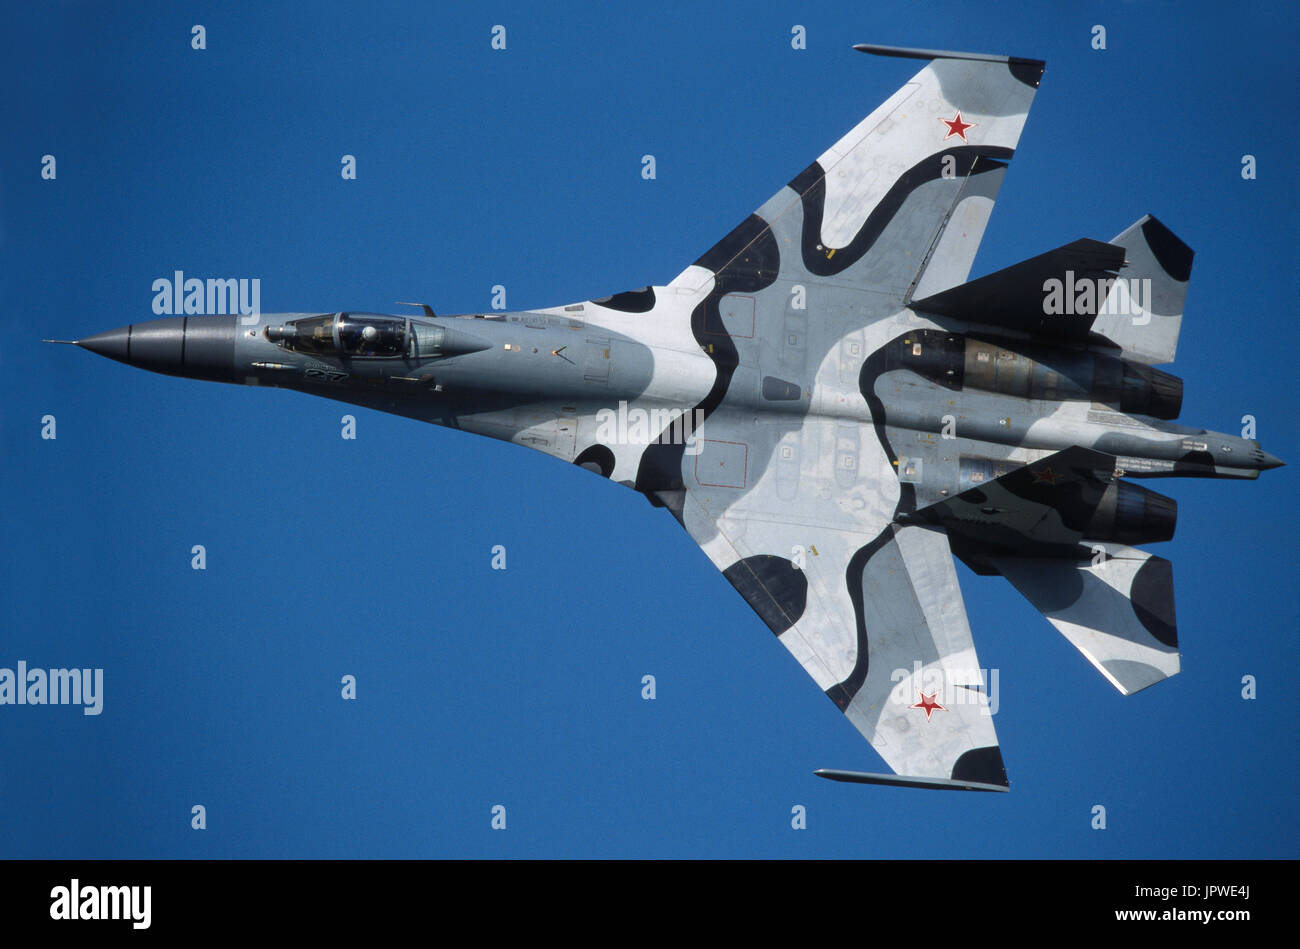 Sukhoi Su-27 Flanker in the flying-display at the 1999 Moscow Zhukovskiy Airshow banking in a steep turn with inboard ailerons deployed - Stock Image